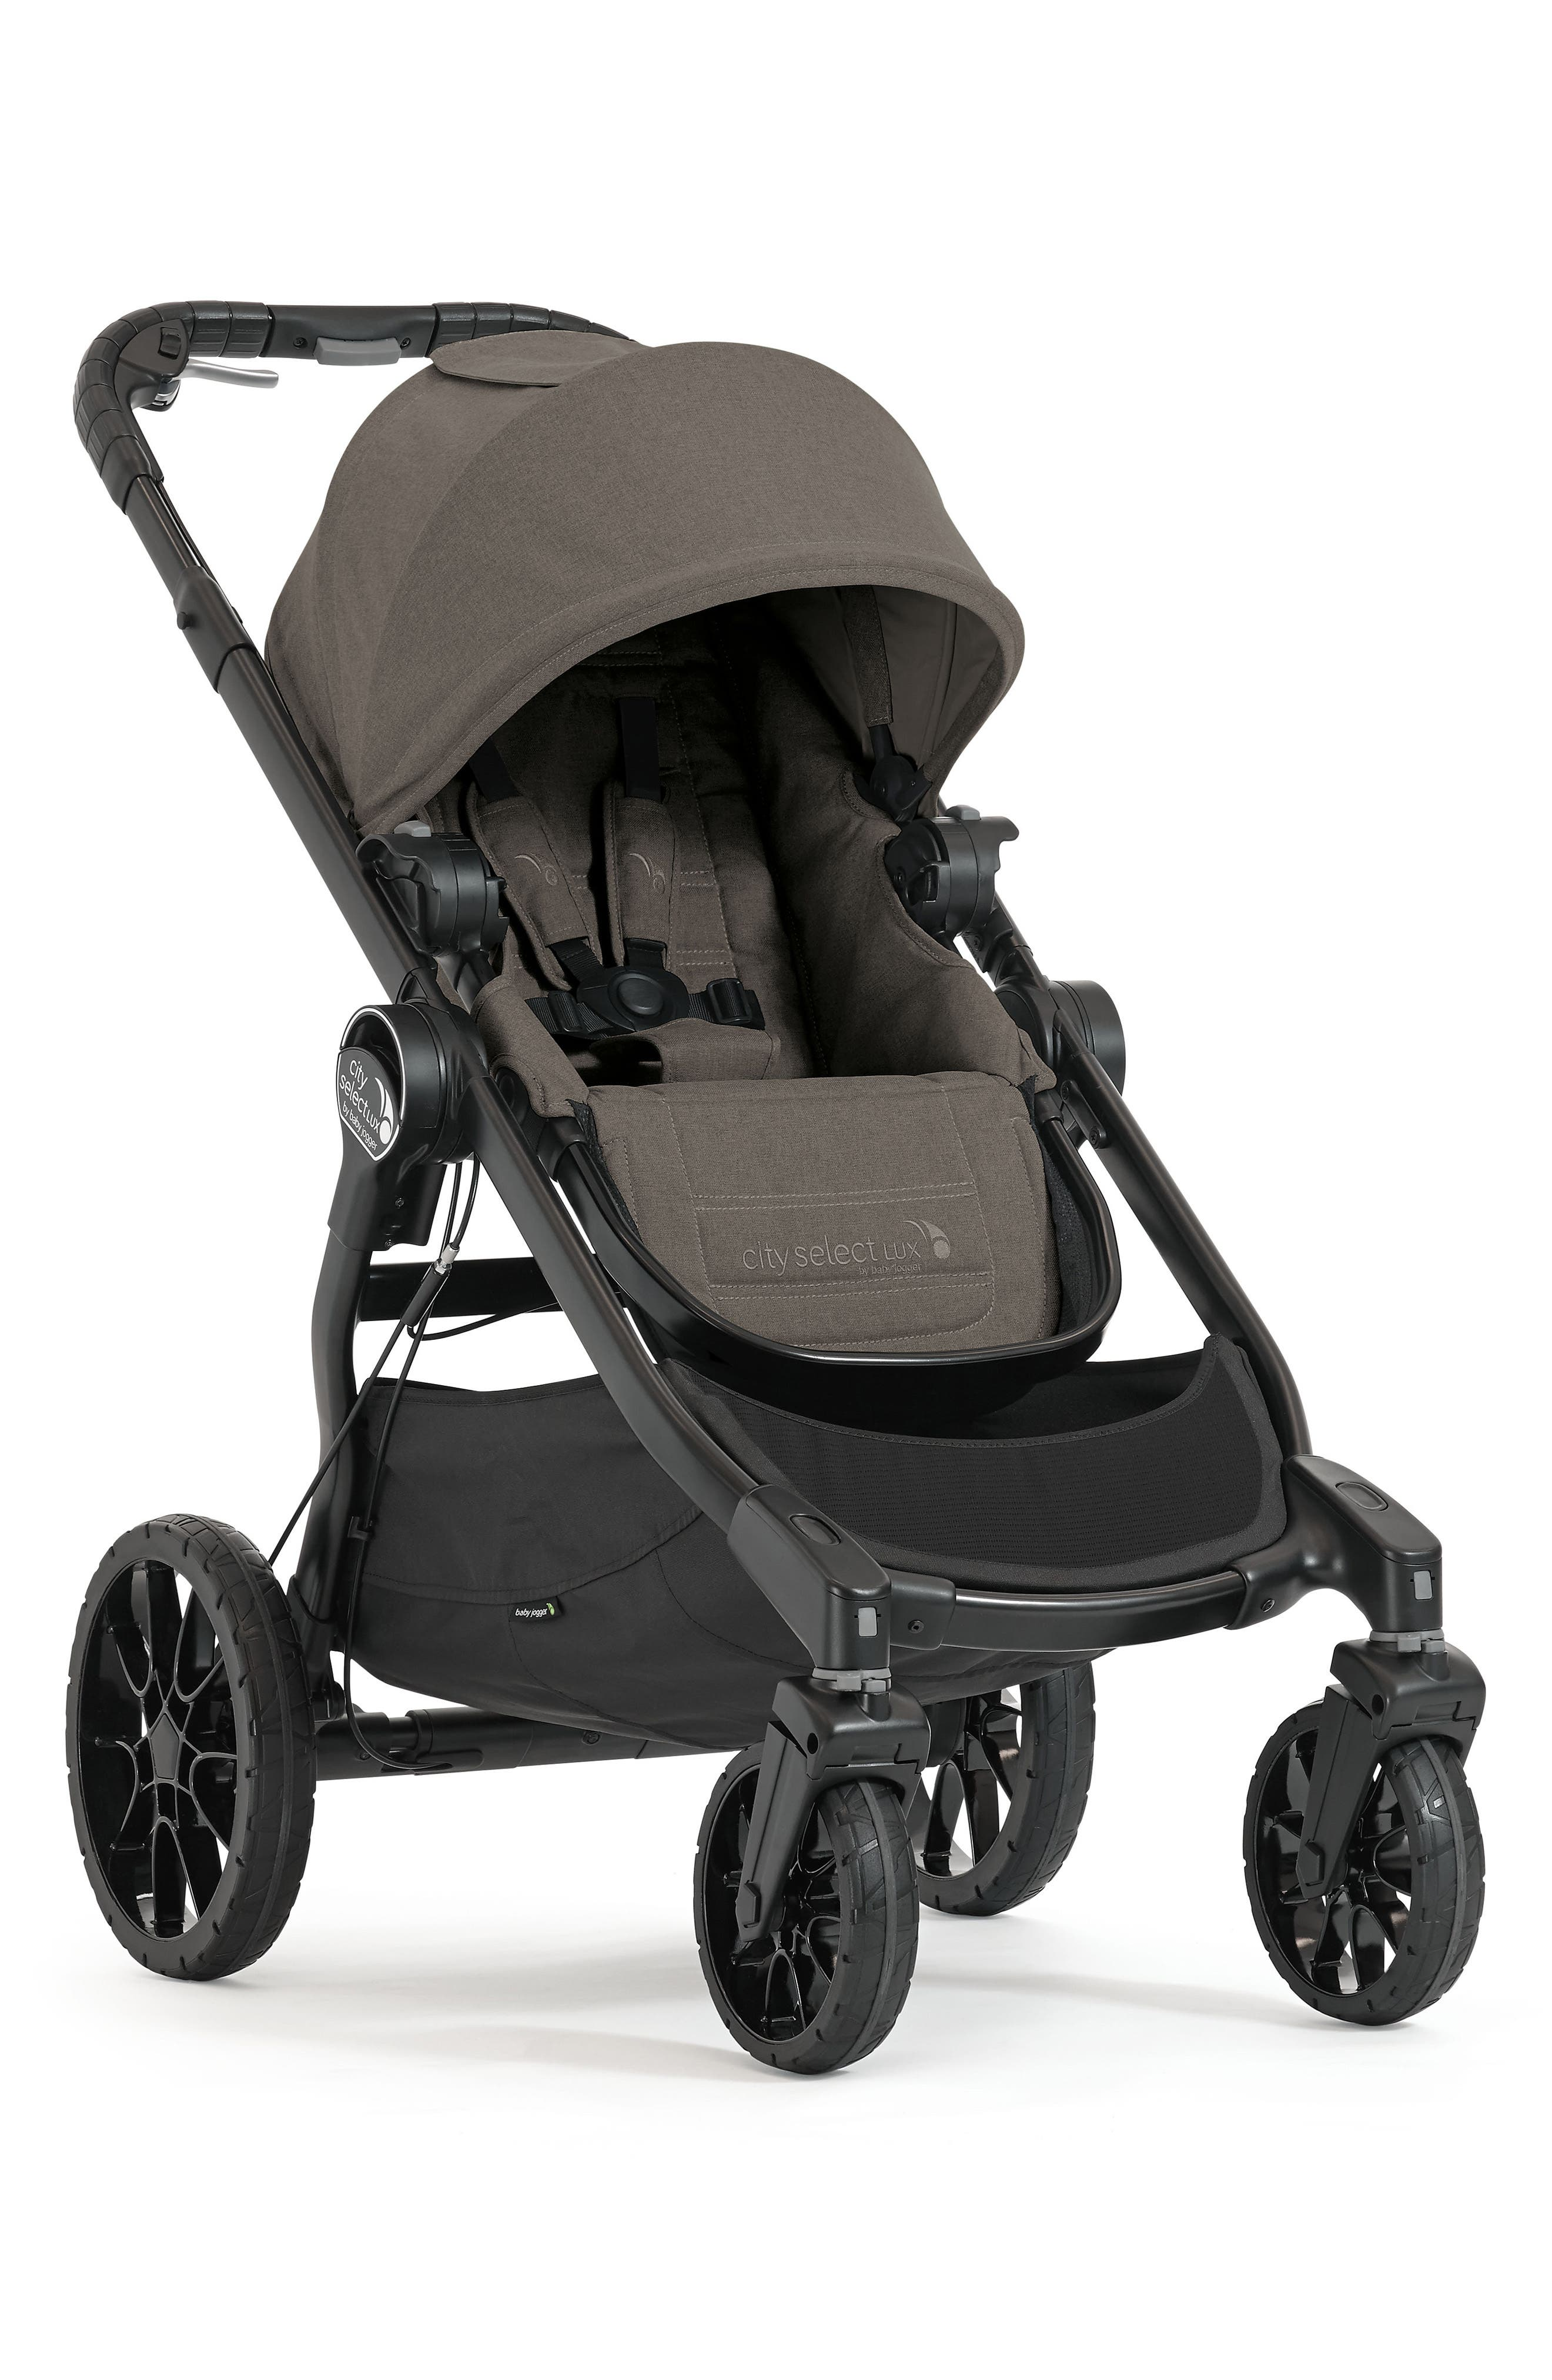 Main Image - Baby Jogger City Select LUX 2017 Stroller